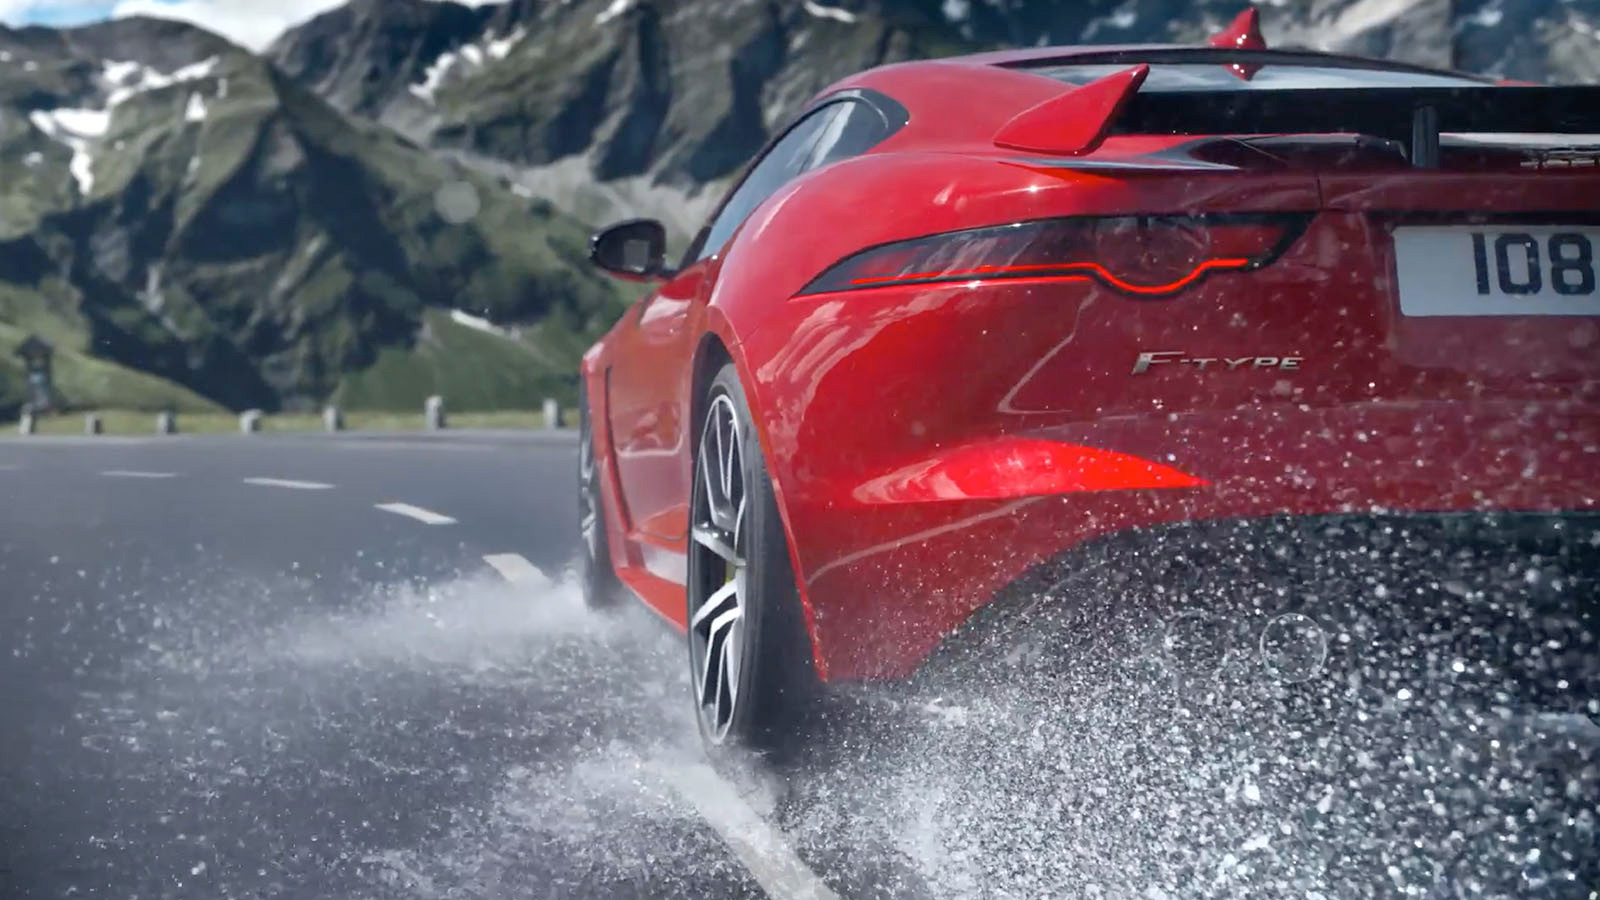 Jaguar F-TYPE splashing up water as it drives down a road.